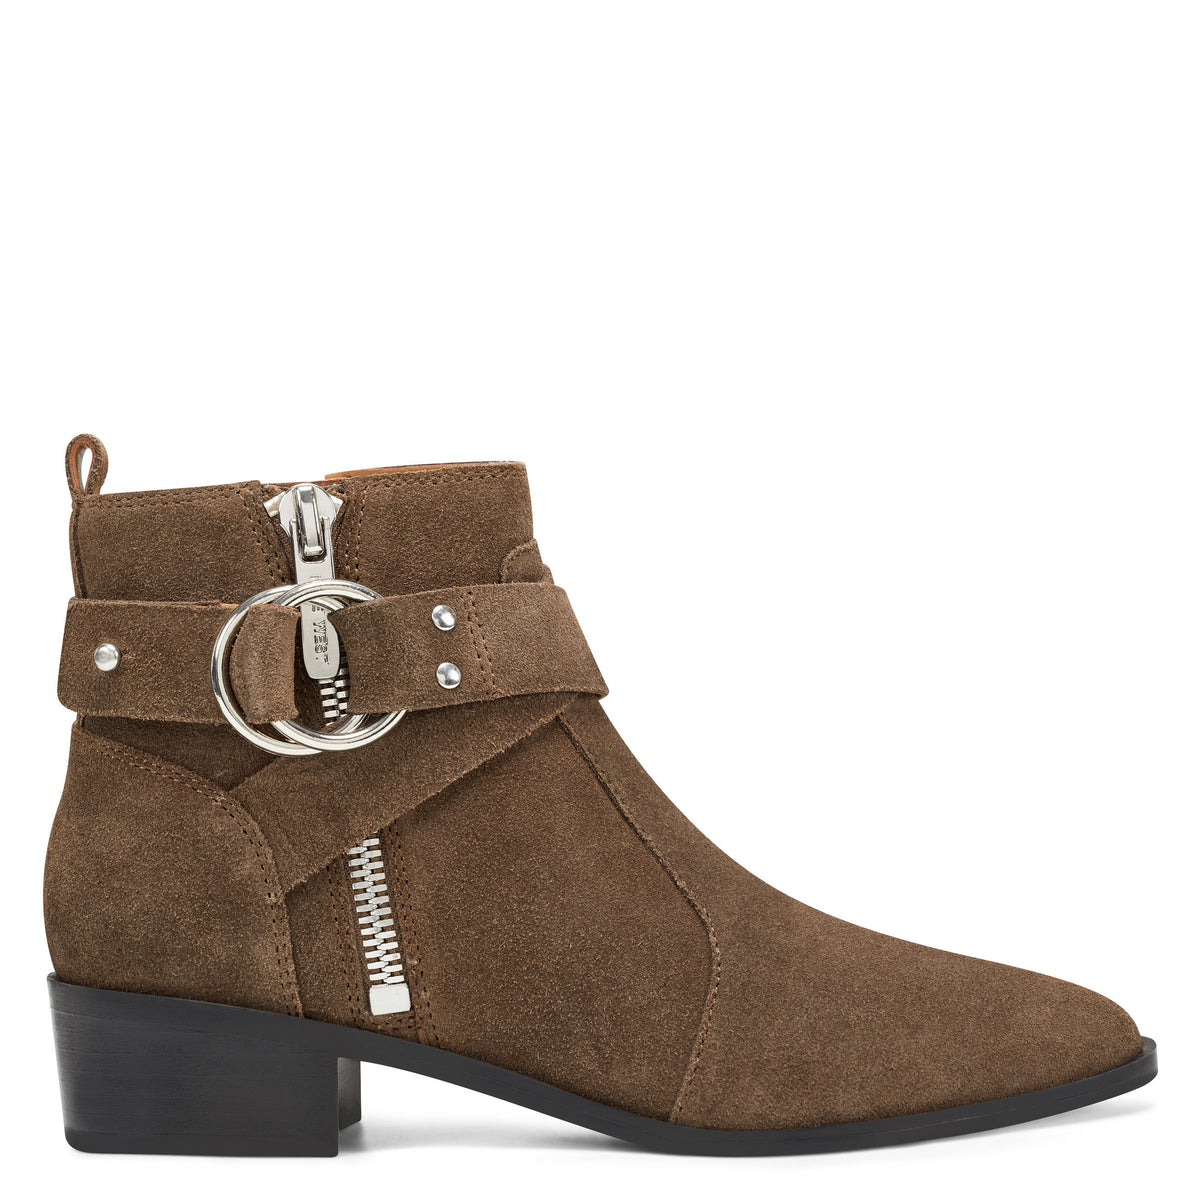 collin-booties-in-dark-brown-suede